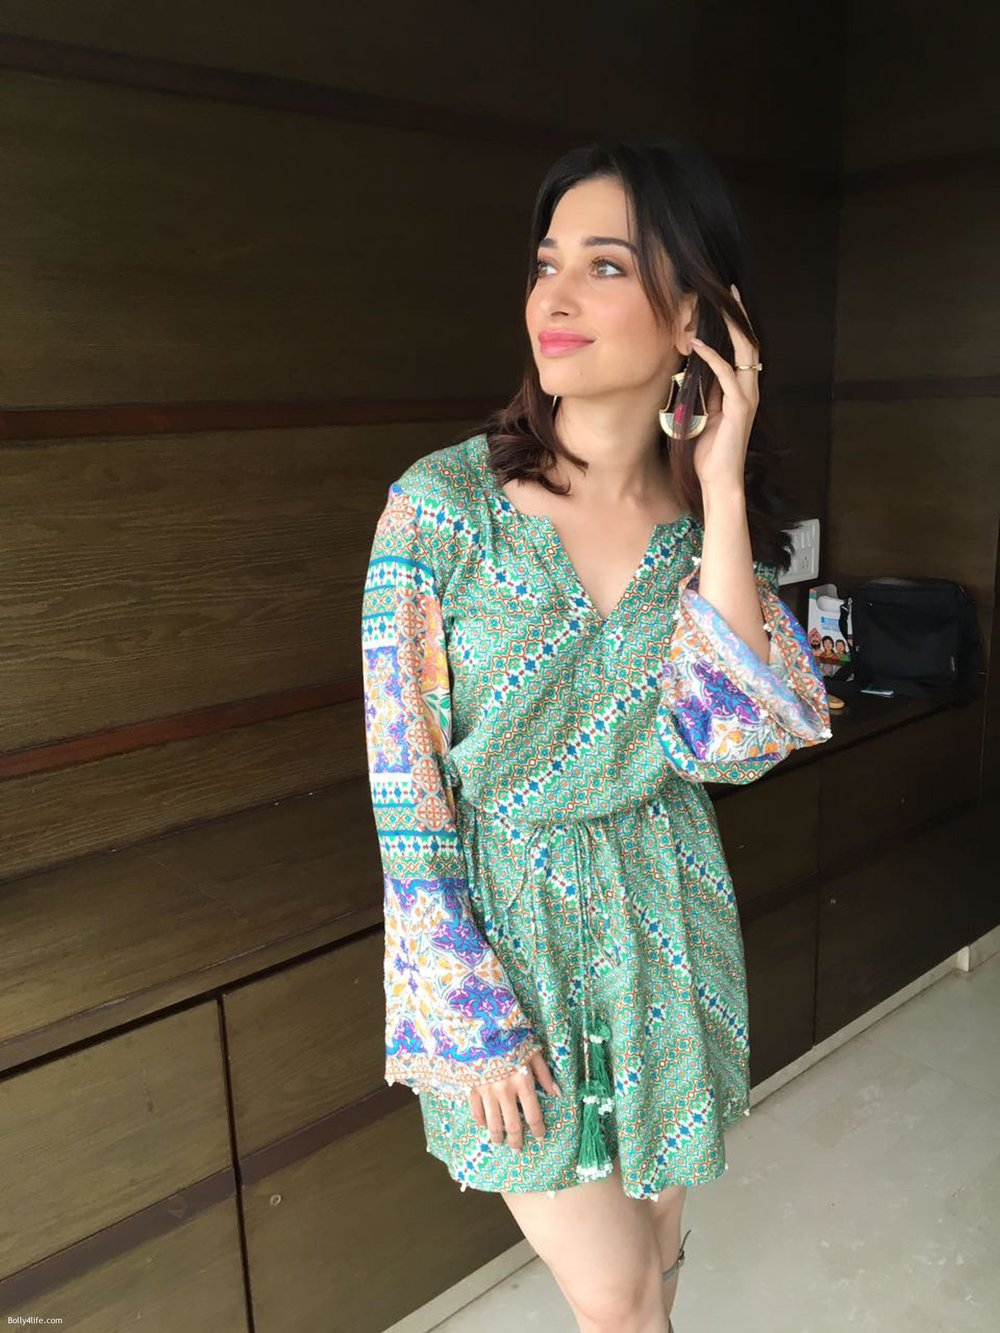 Tamannah-Bhatia-looking-ravishing-during-the-promotions-of-of-her-upcoming-film-Tutak-Tutak-Tutiya-5.jpg